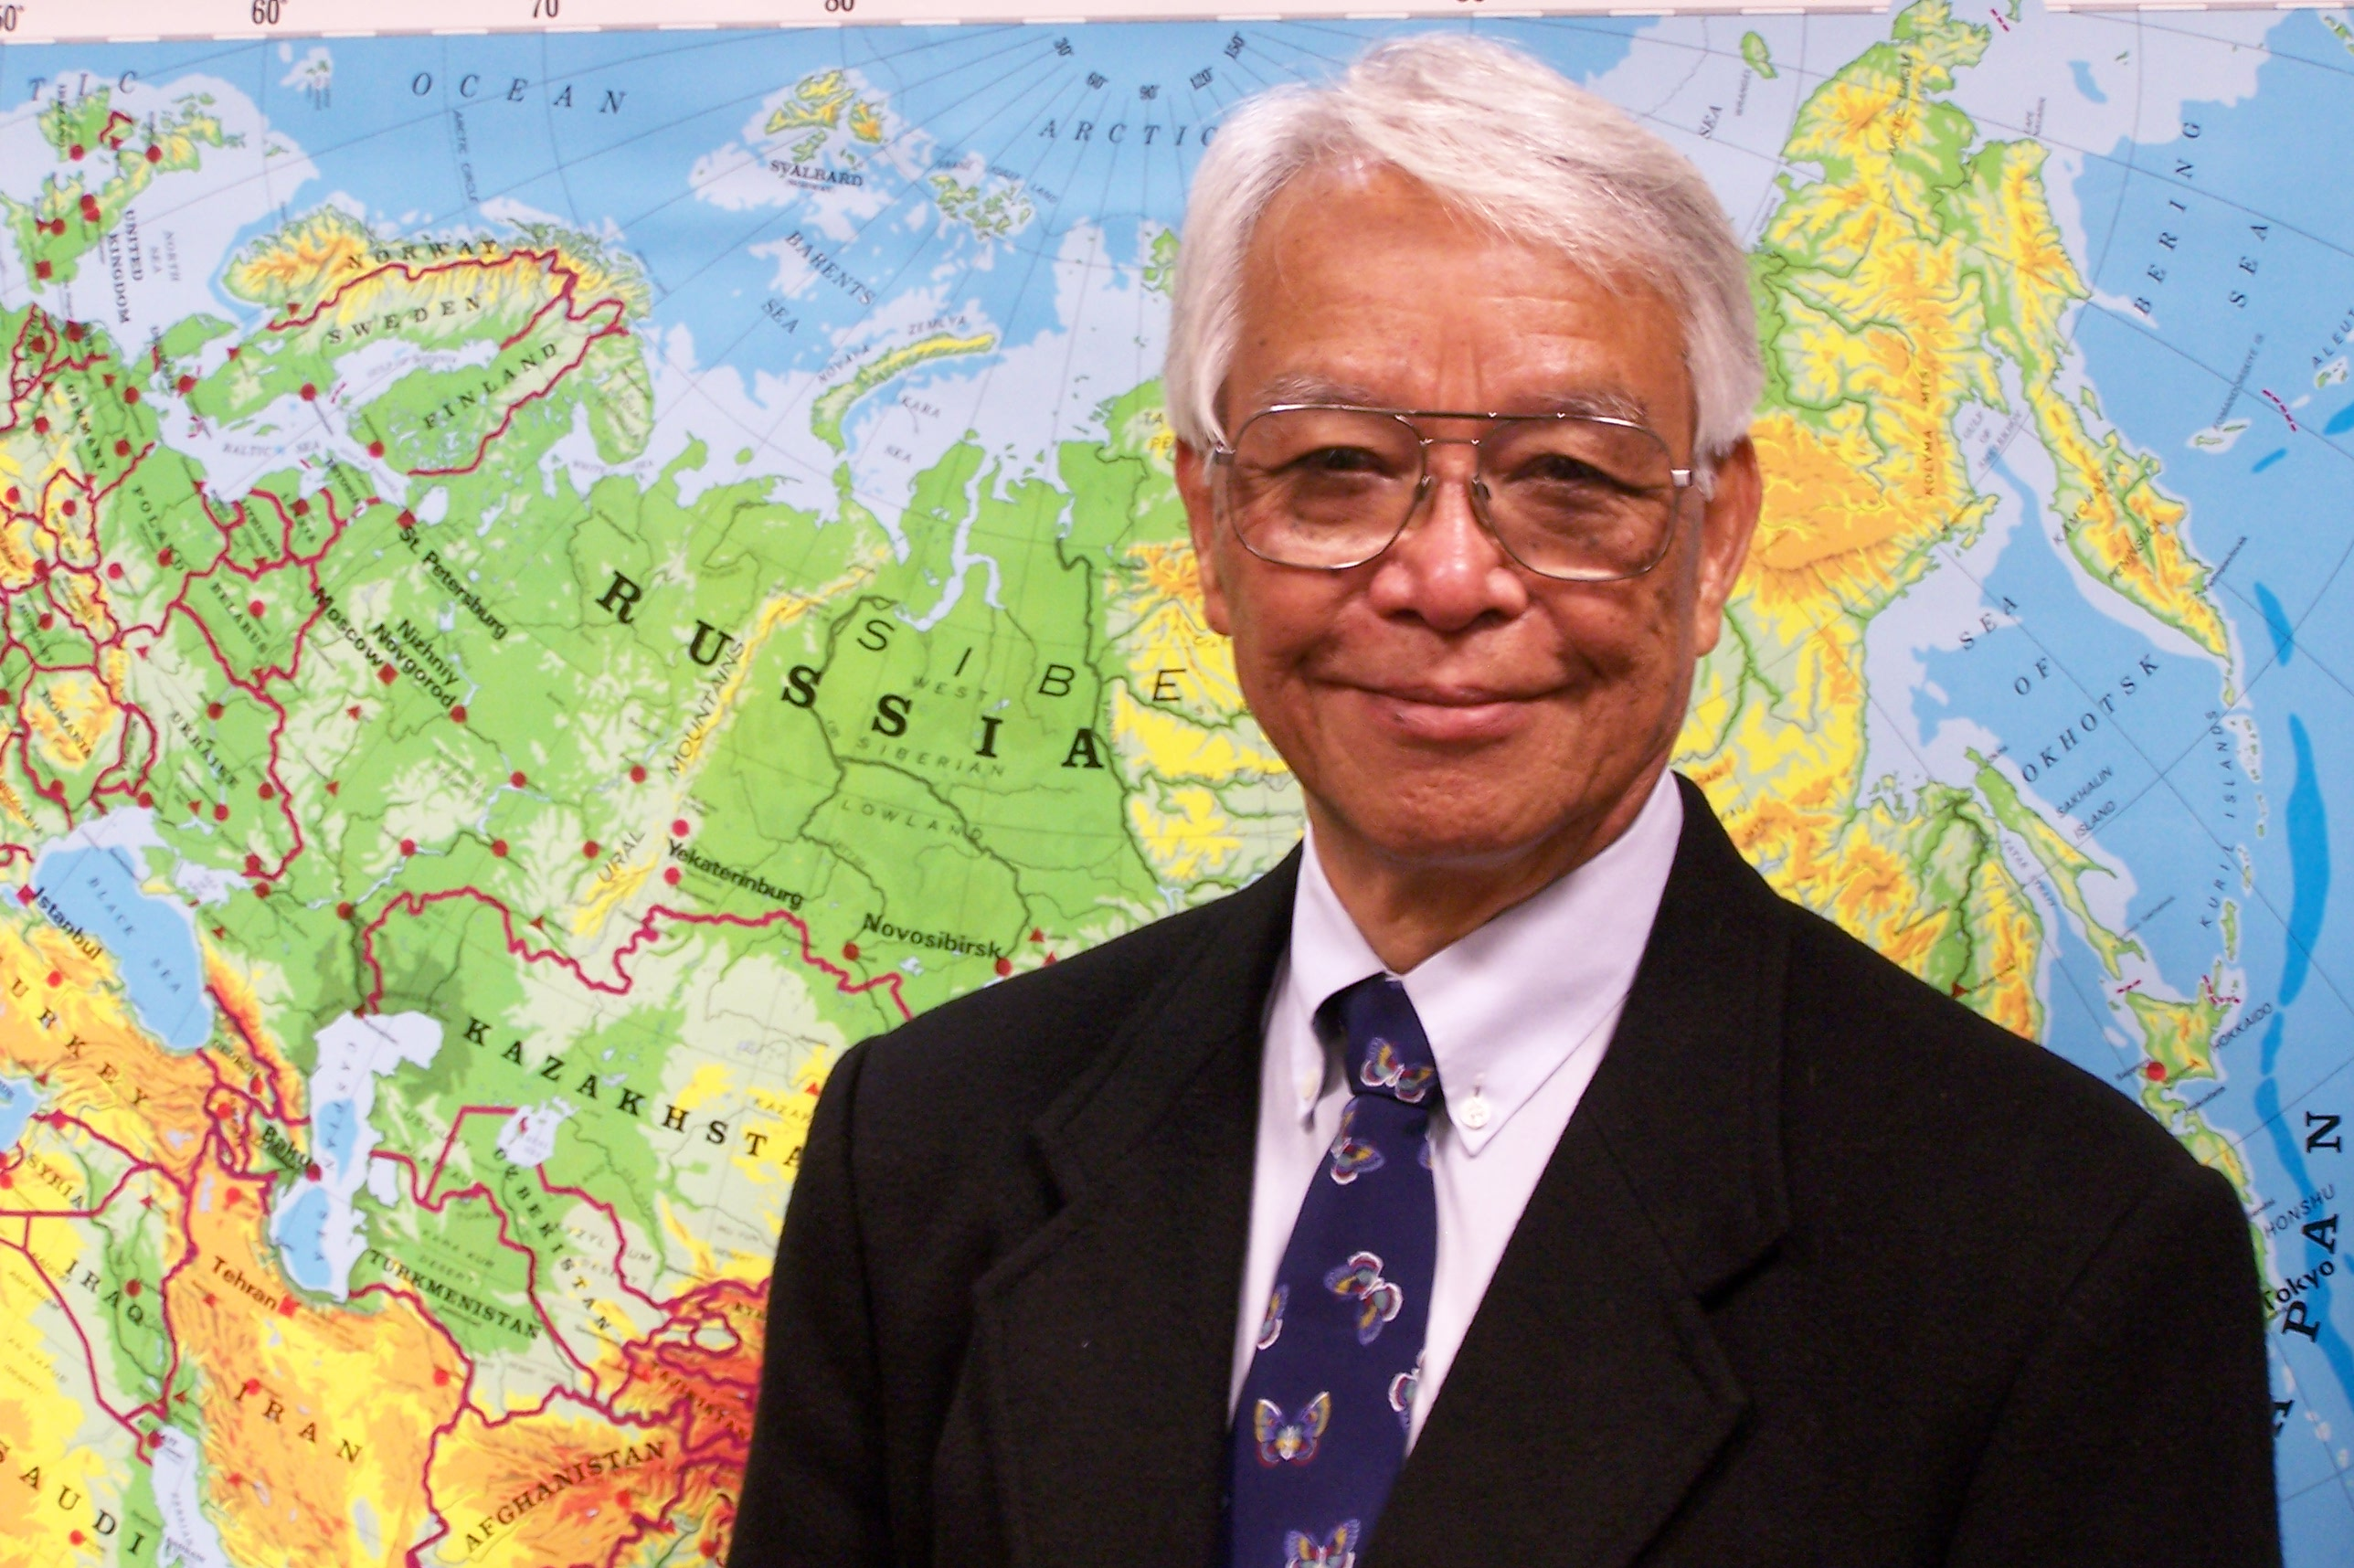 Art Britto, President of the Macau Arts Culture and Heritage Institute